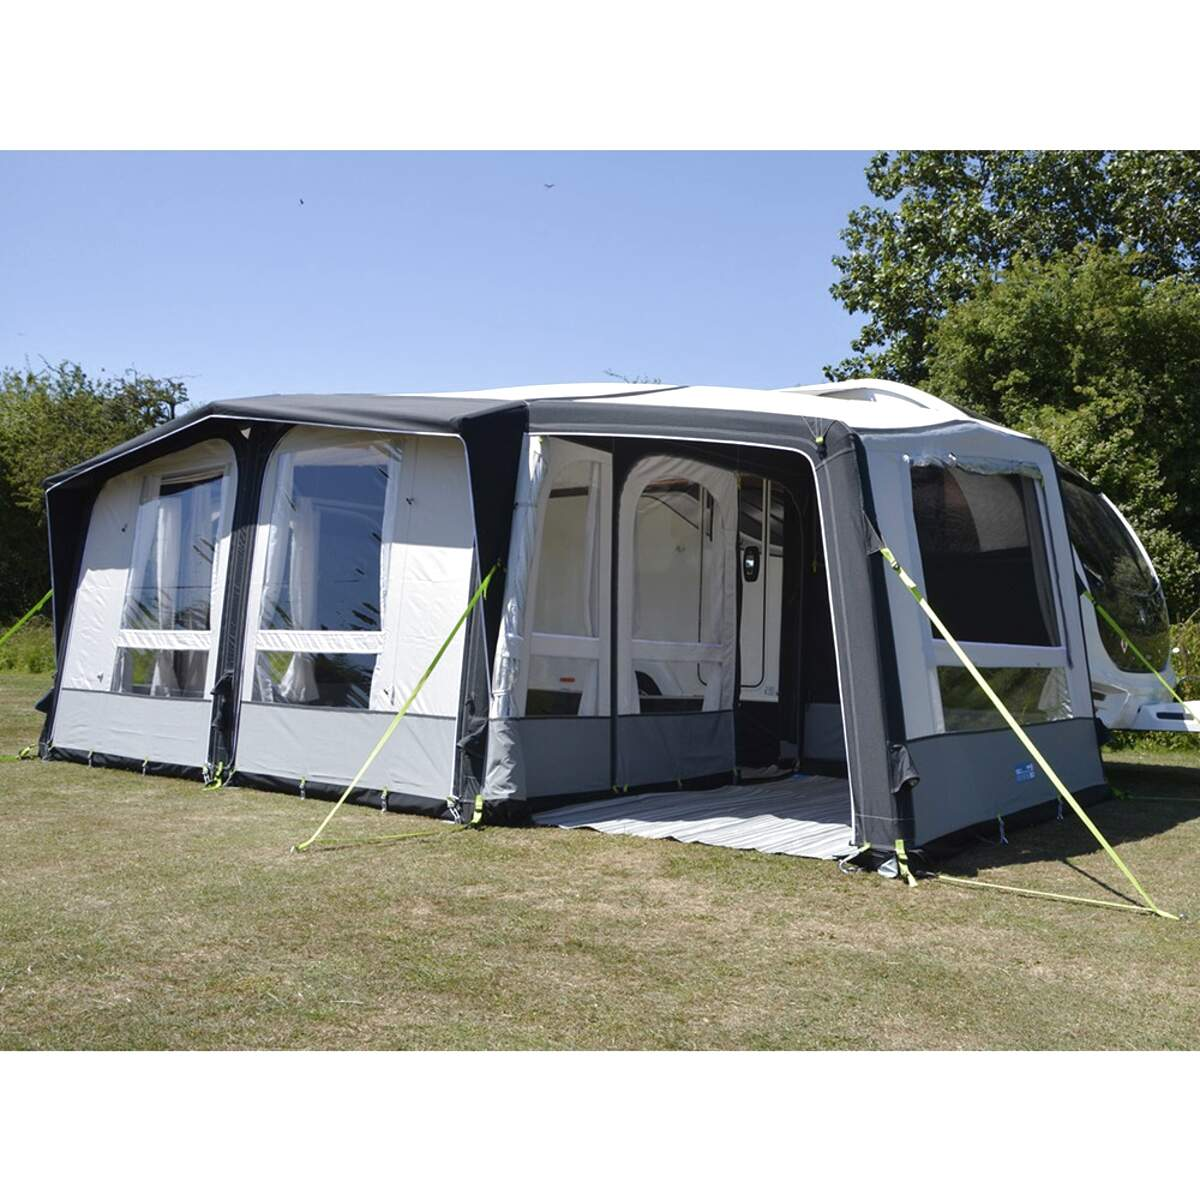 Inflatable Caravan Awnings for sale in UK | View 65 ads